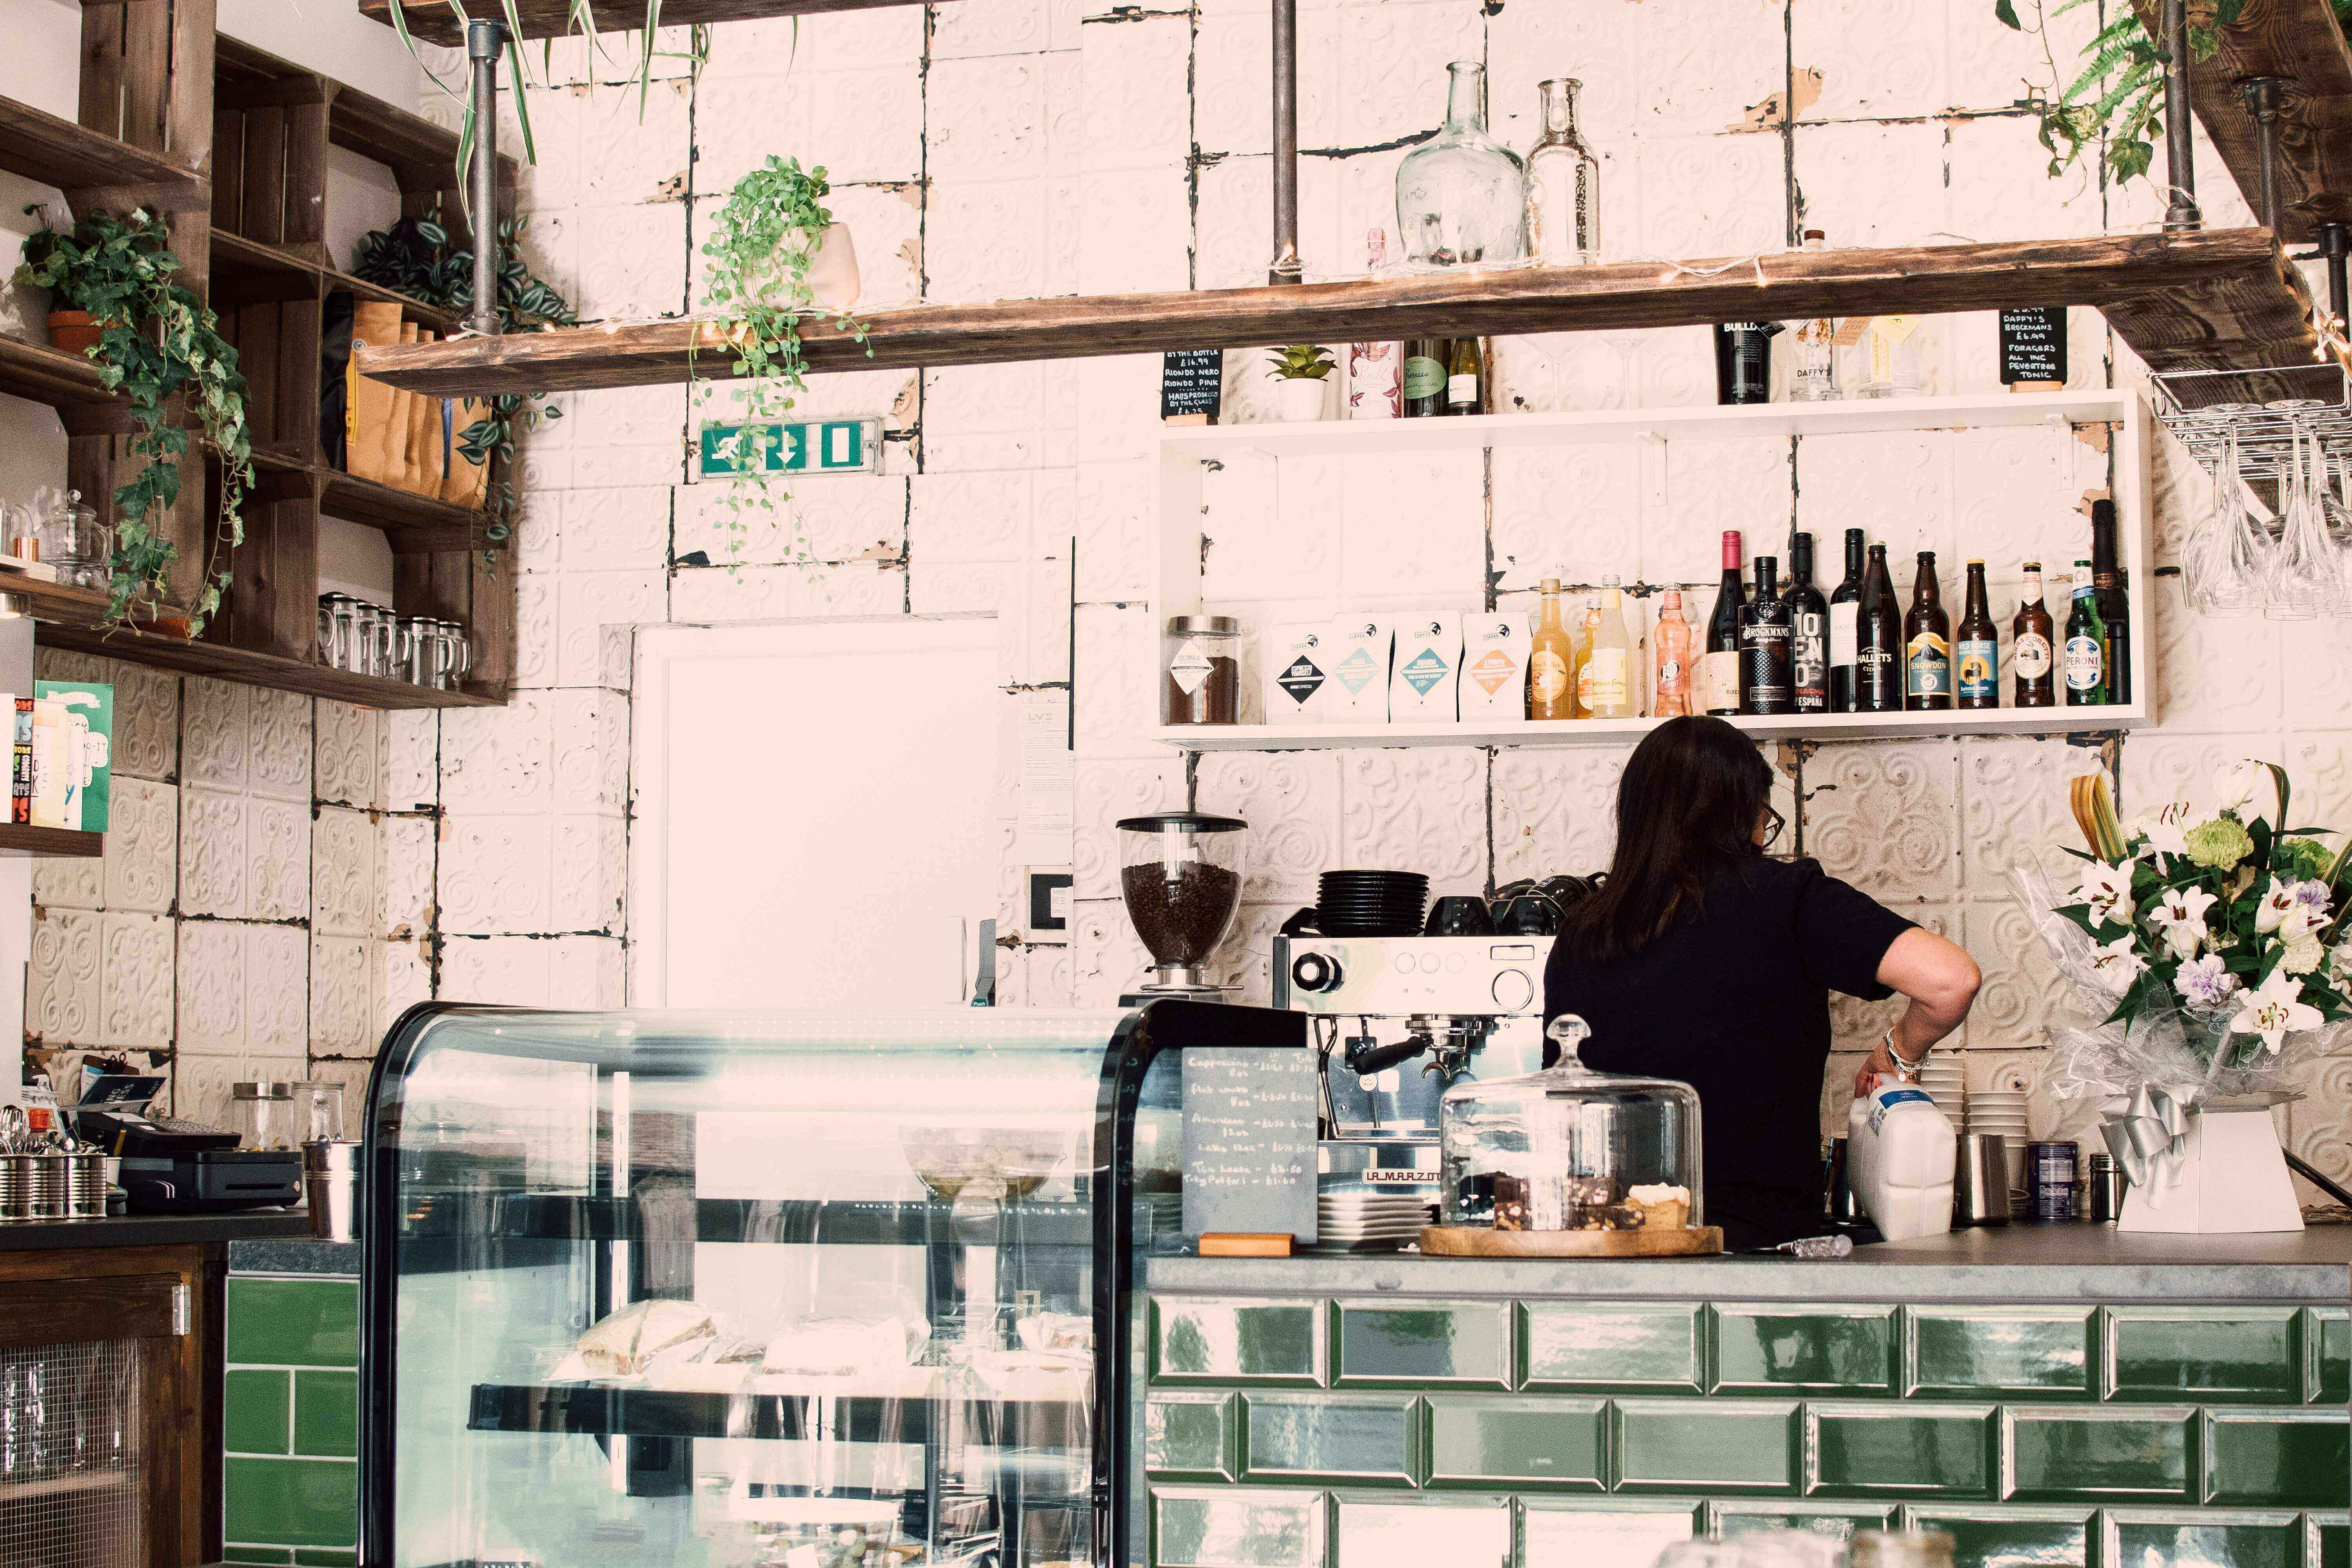 A barista behind the bar at a cafe making coffee